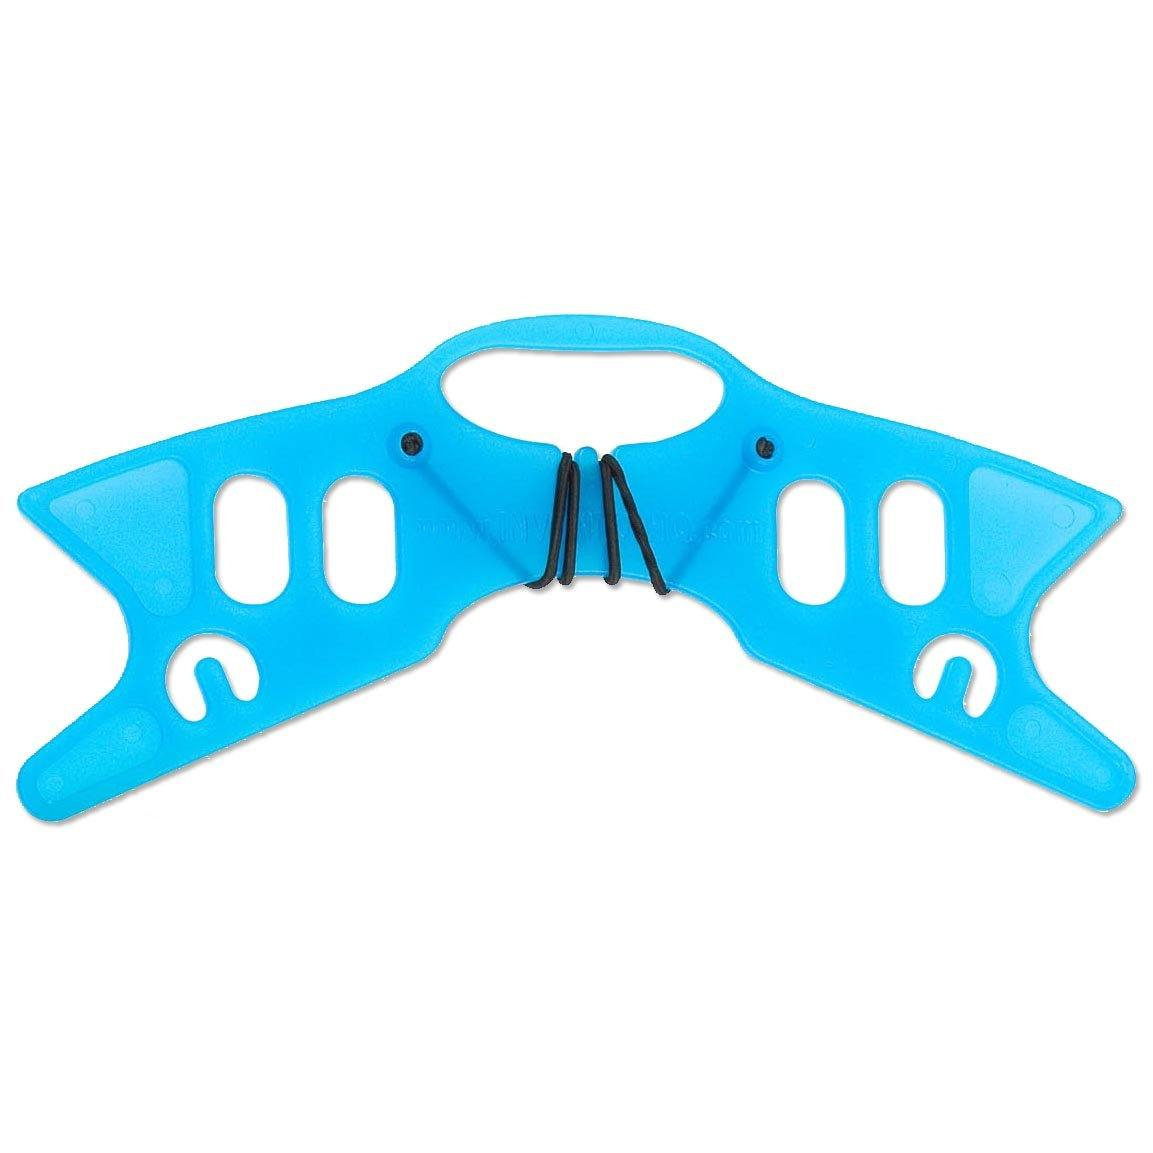 Blank Stunt Kite Line Winder With Bungee - Kitty Hawk Kites Online Store